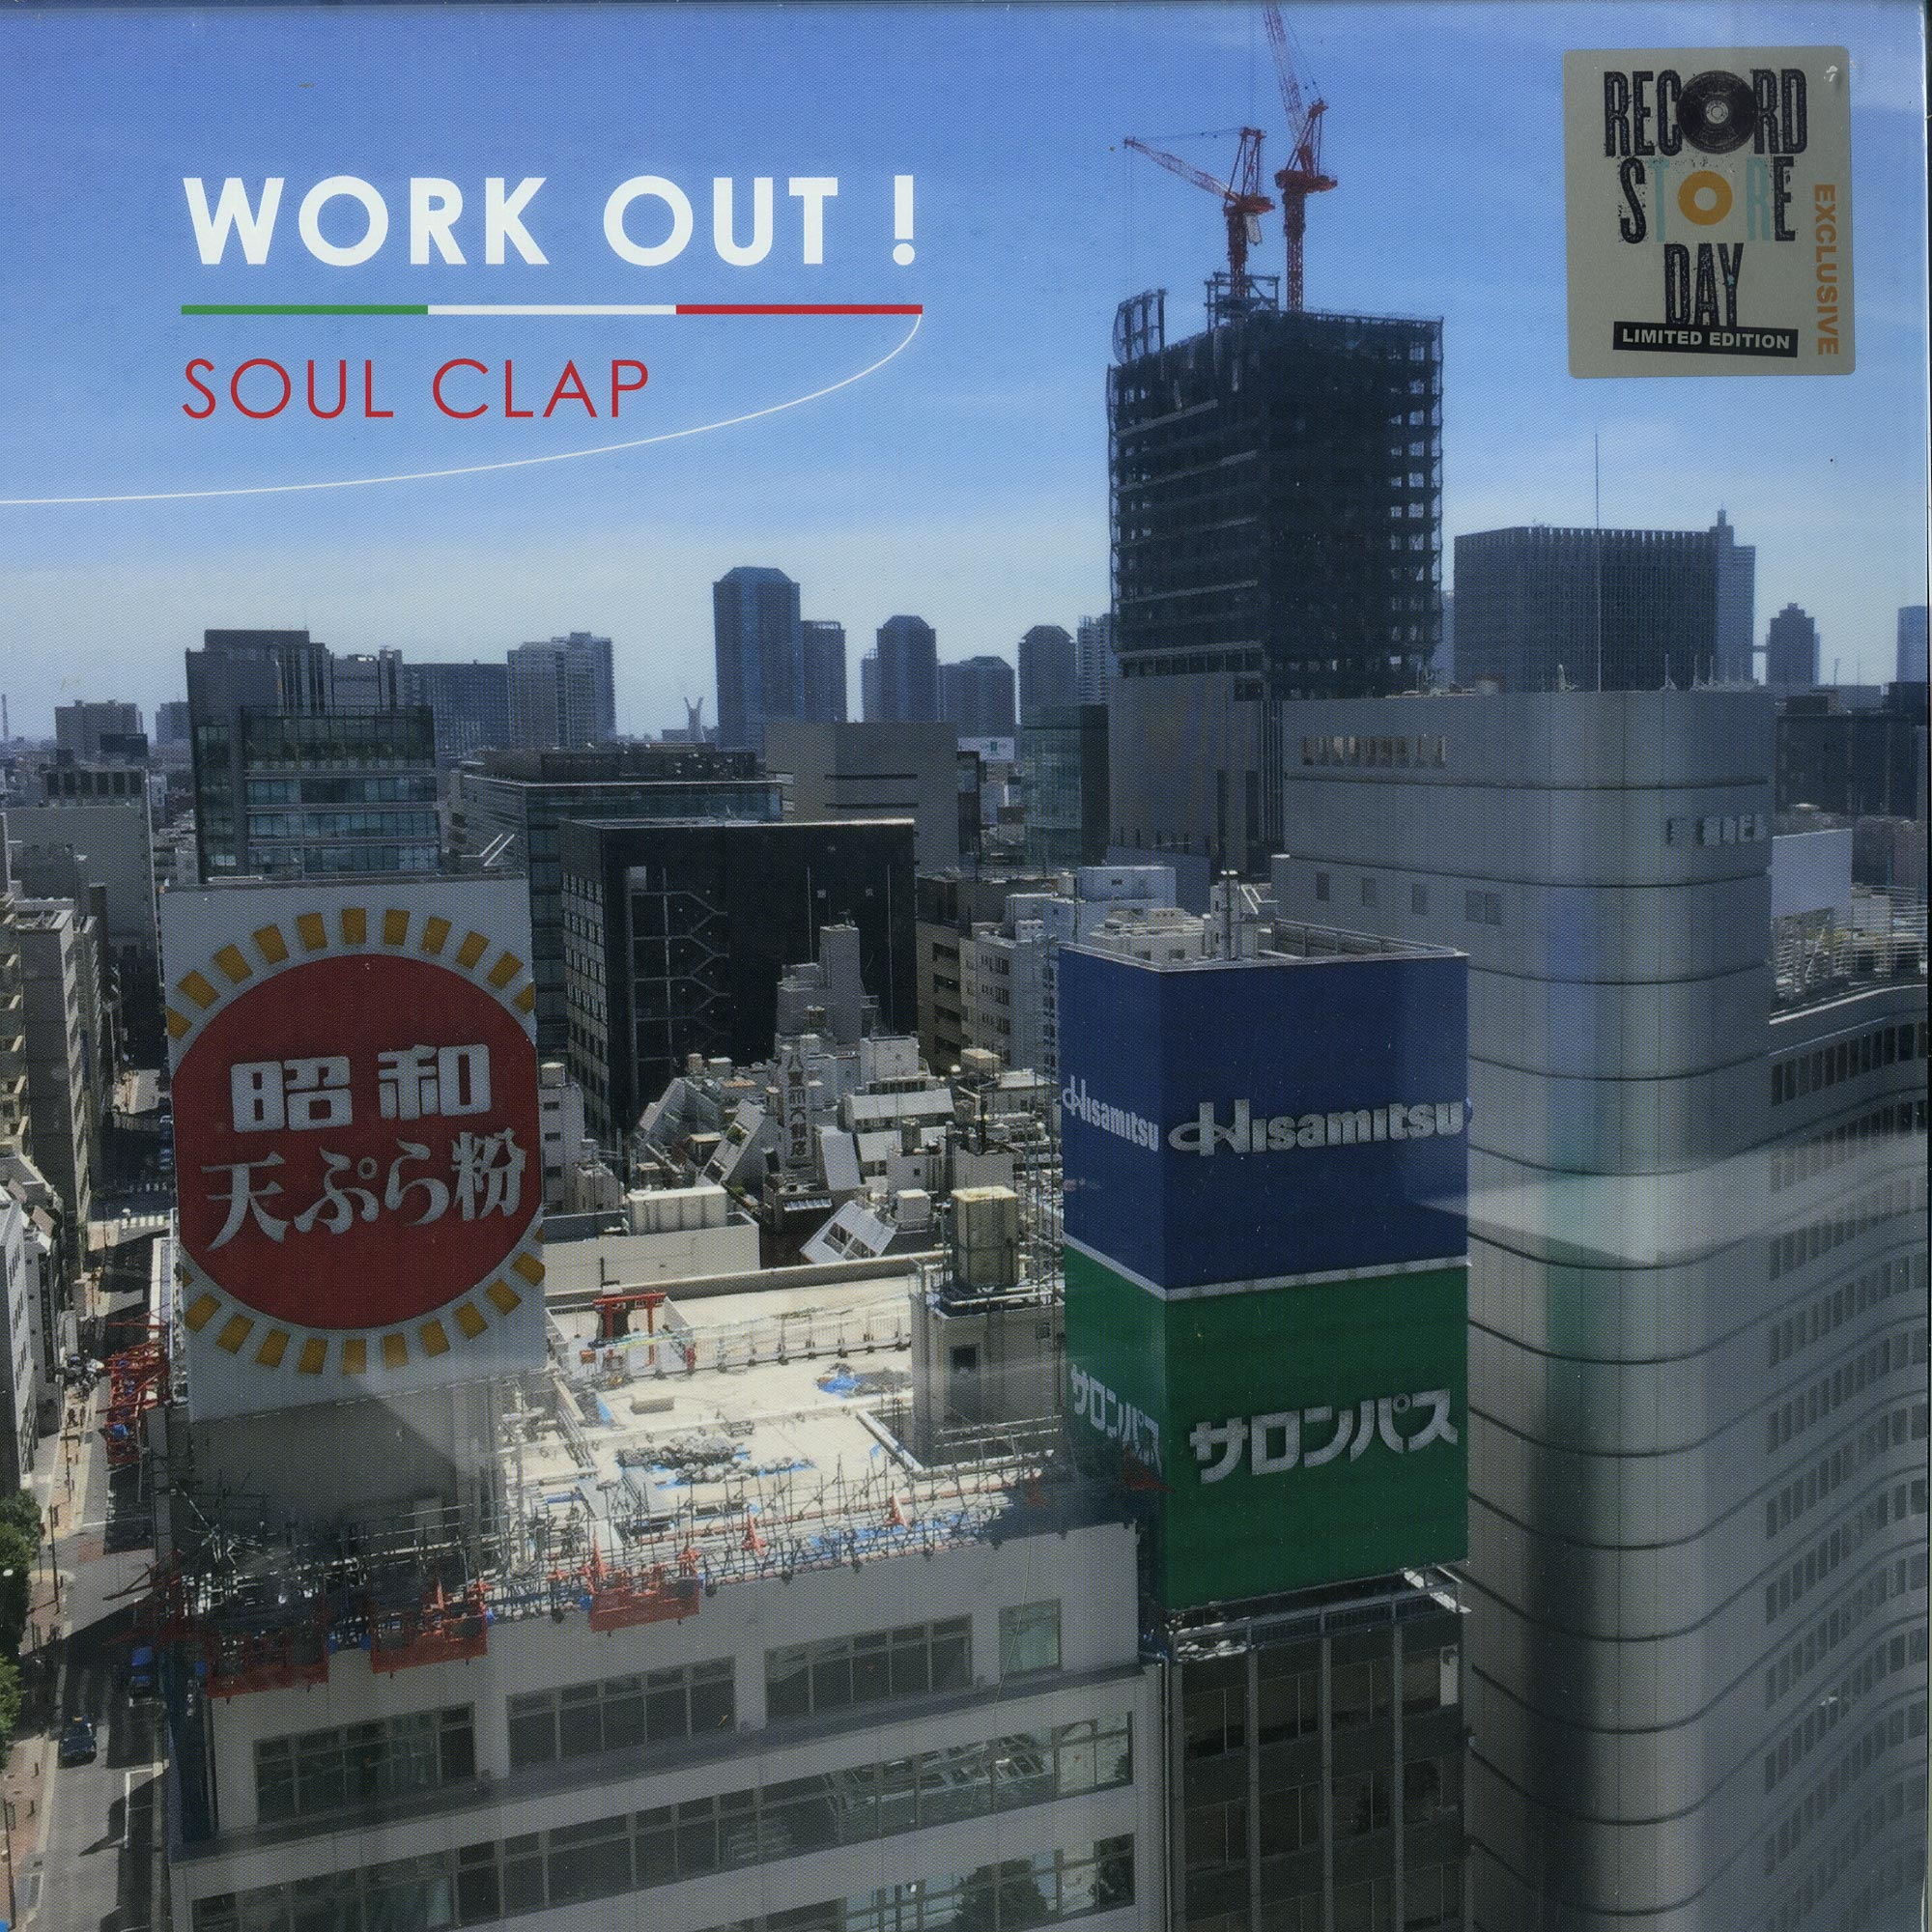 Work Out! - SOUL CLAP